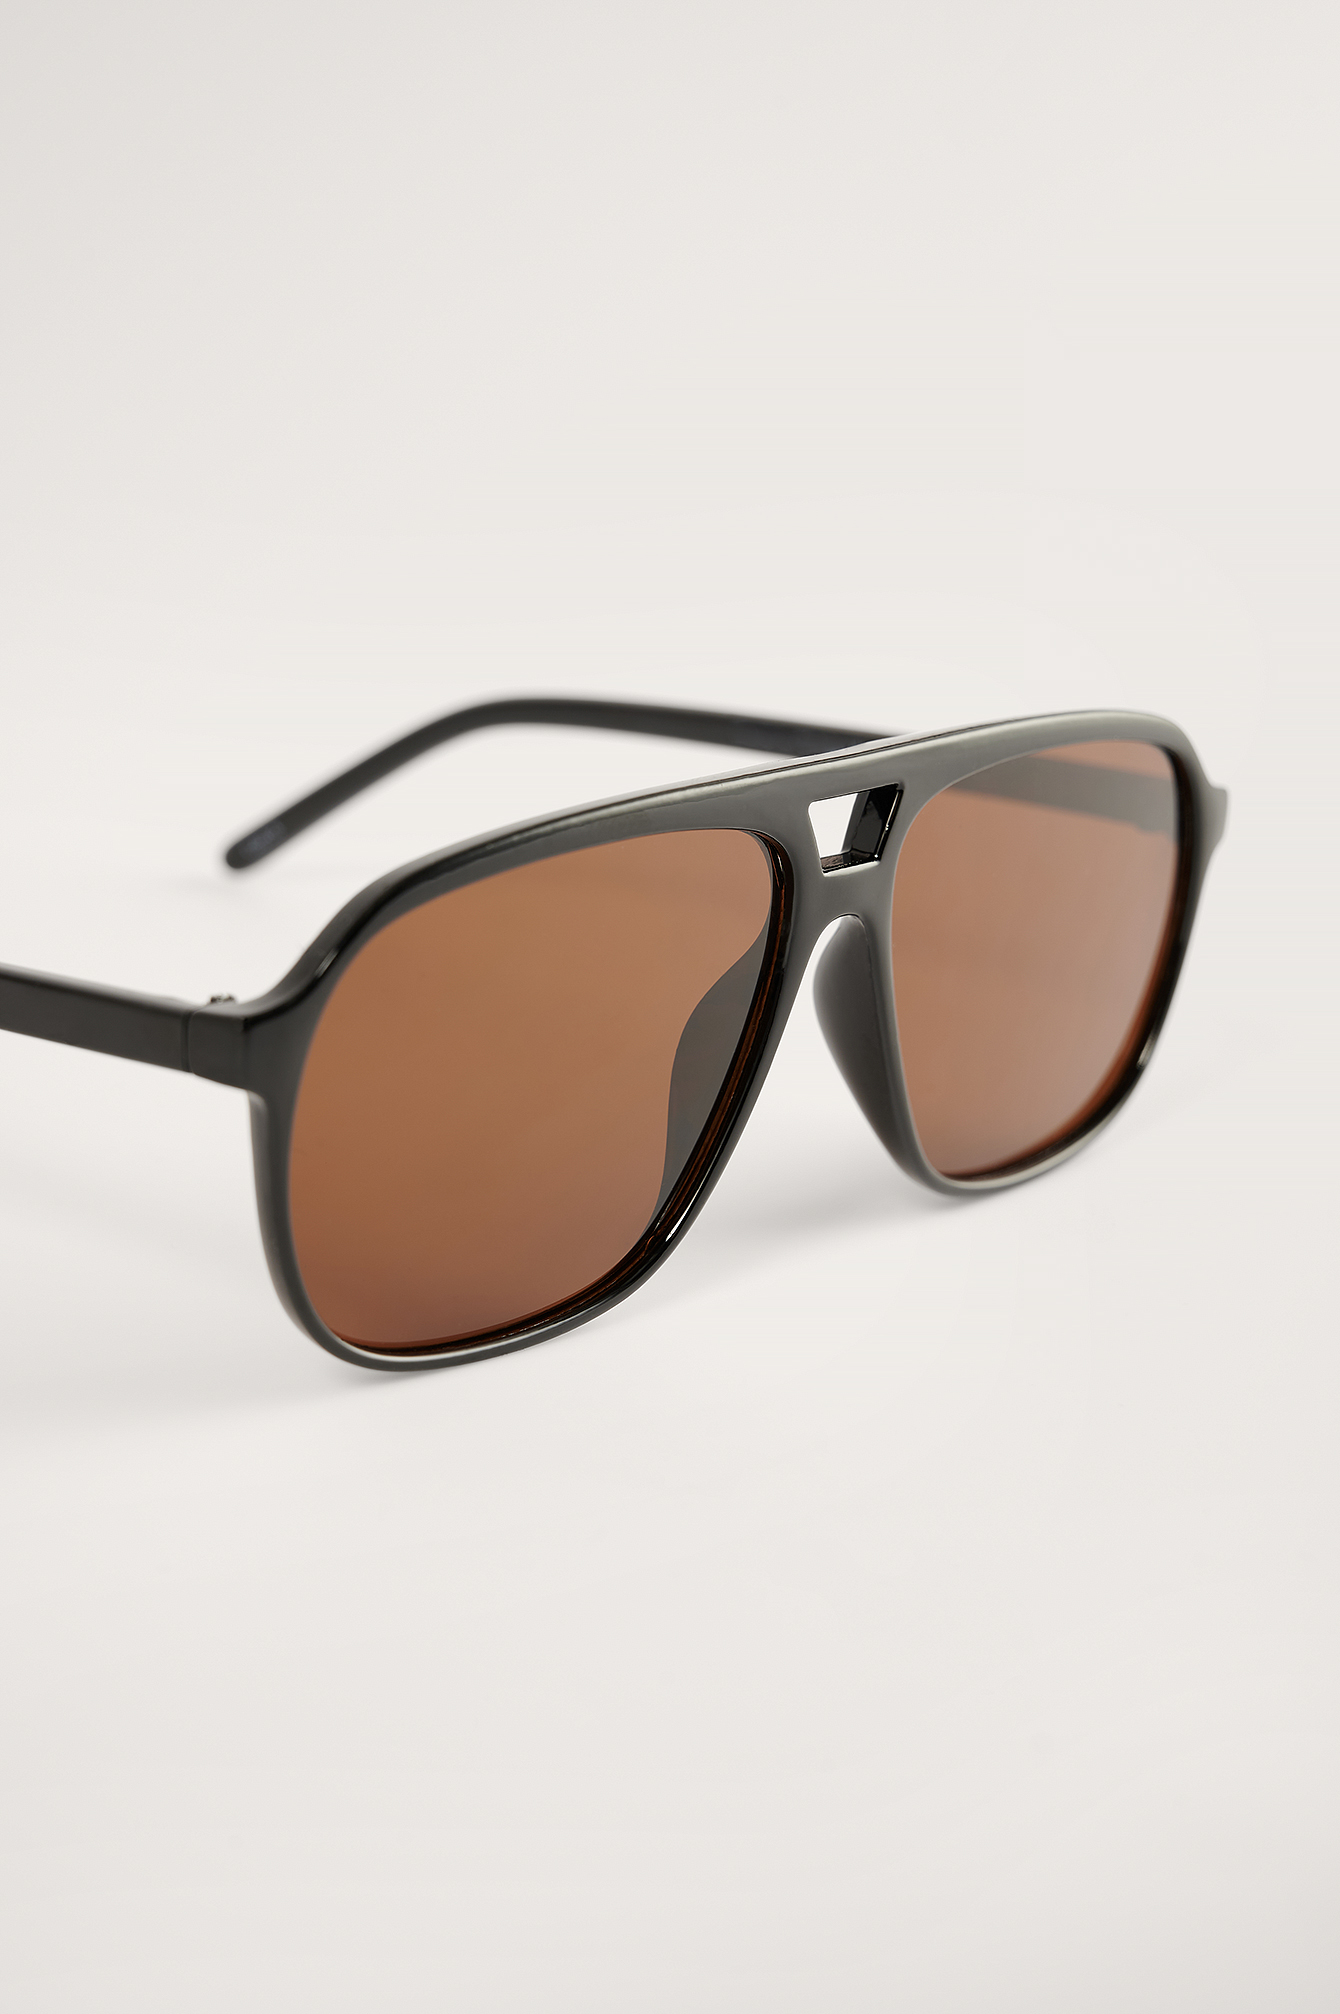 Black/Brown Retro Pilot Sunglasses